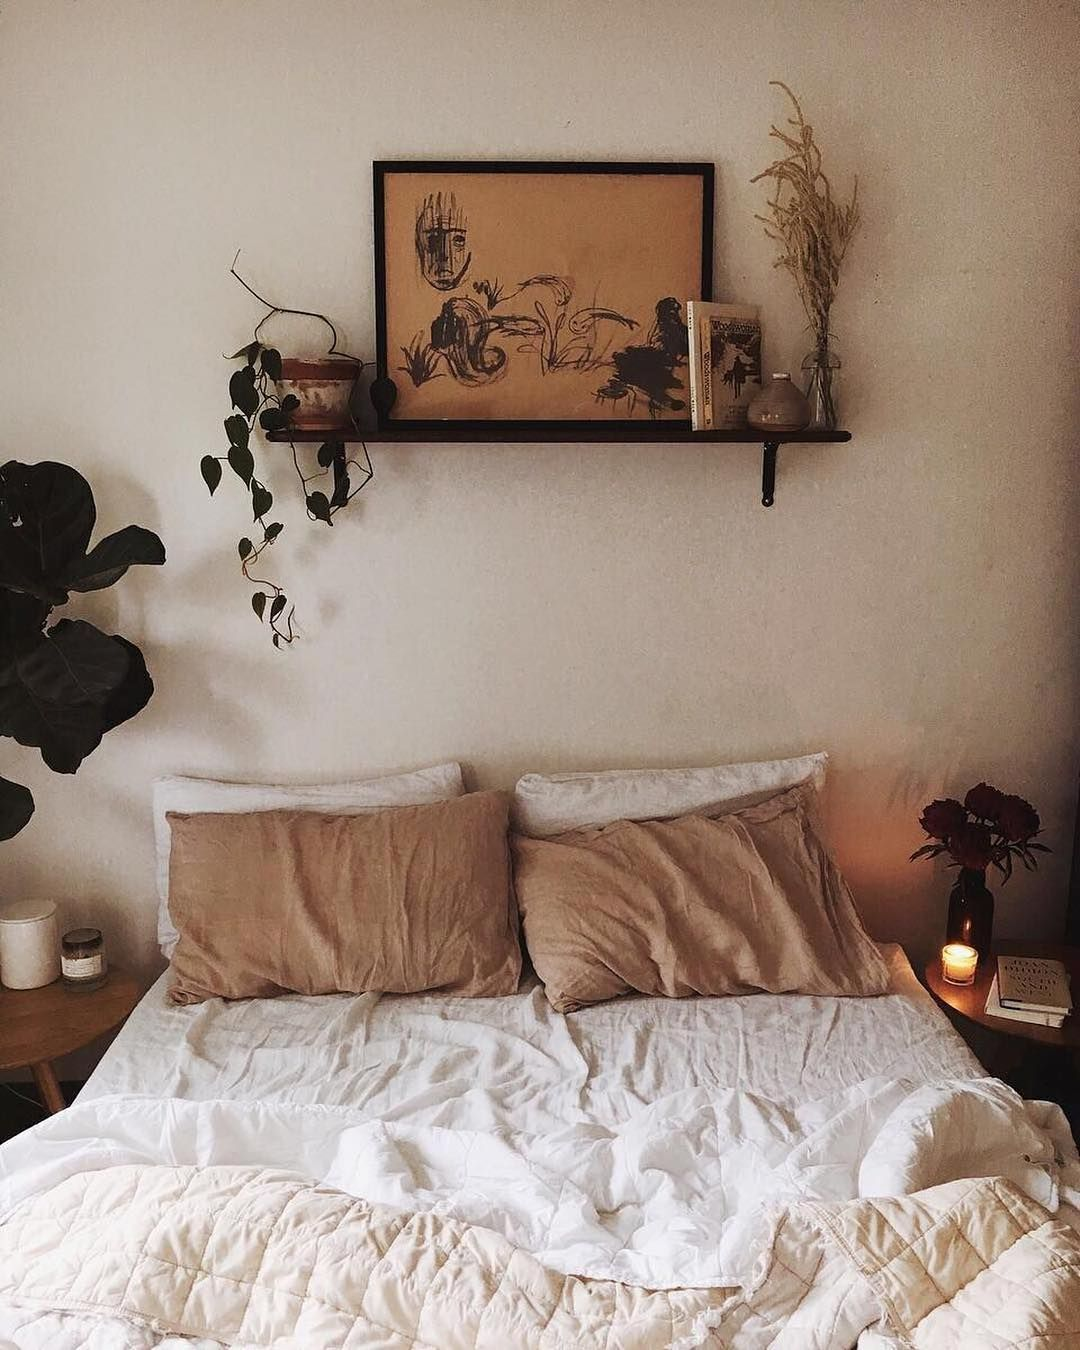 Chilled Out Relaxing Earthy White Bedroom Wall Decor Bedroom Home Decor Bedroom Room Decor